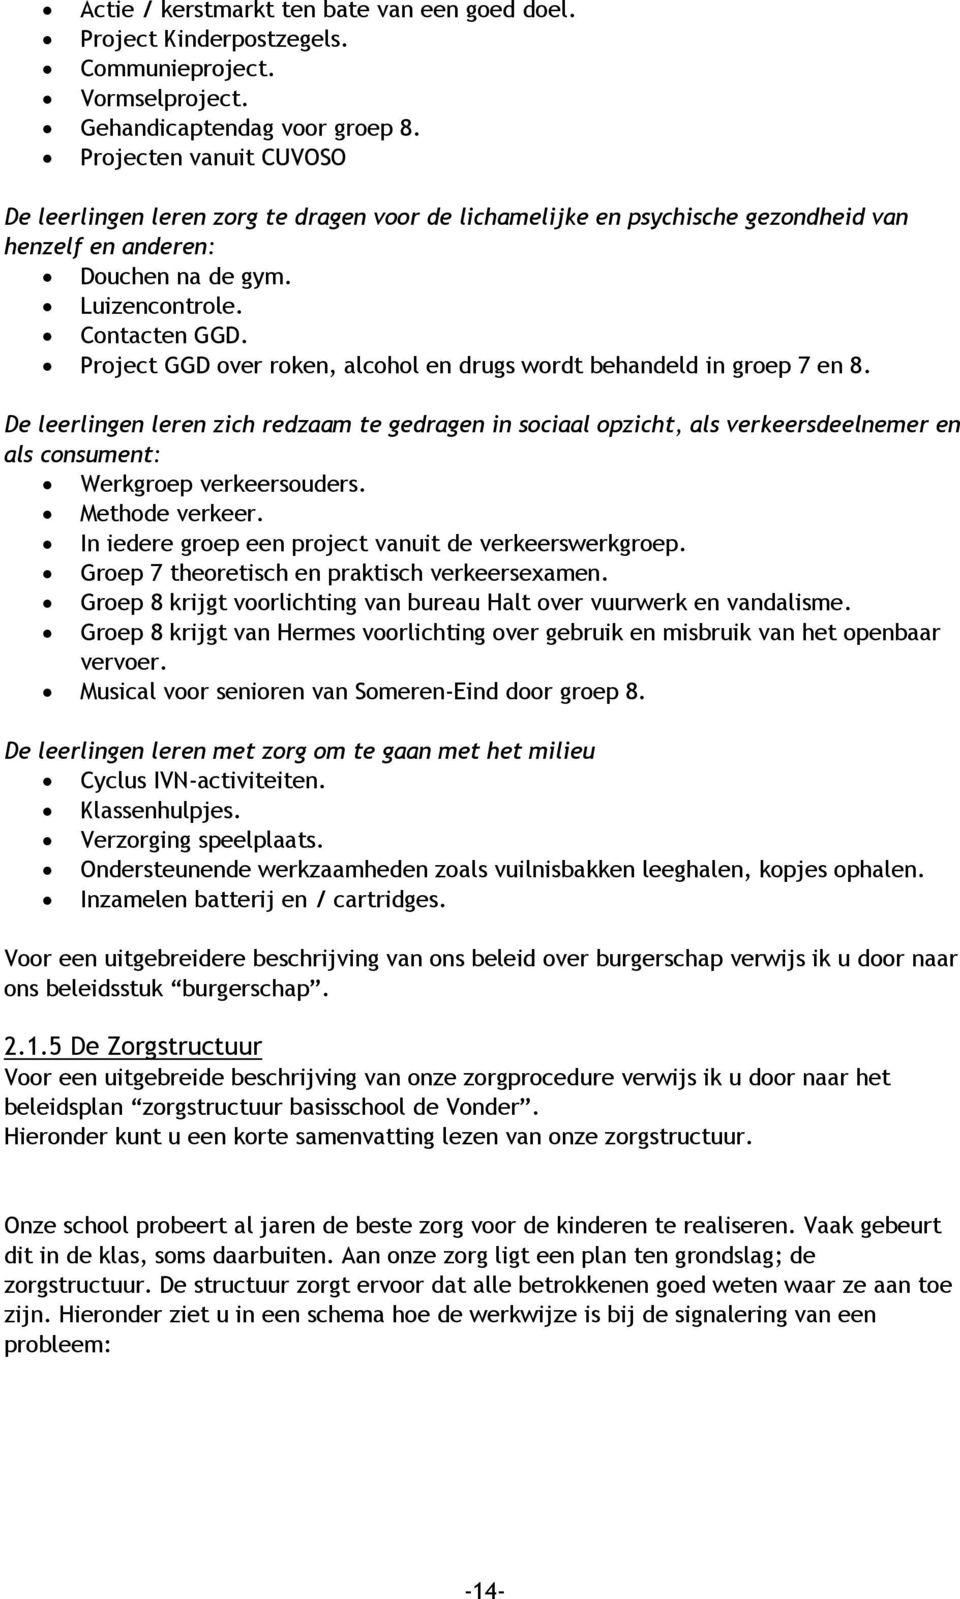 Project GGD over roken, alcohol en drugs wordt behandeld in groep 7 en 8.